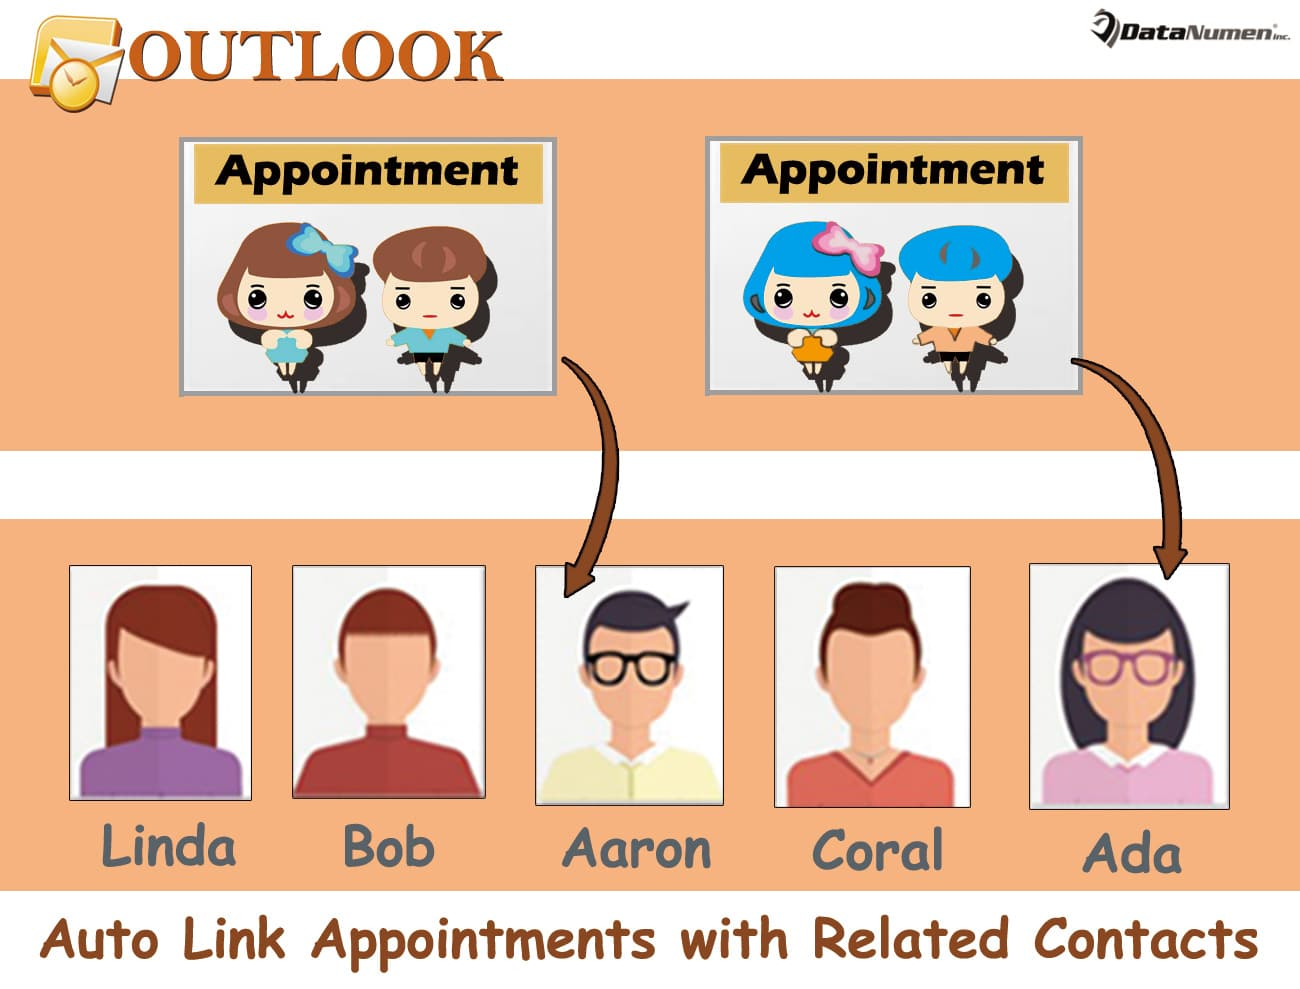 Auto Link Appointments with Related Contacts in Outlook